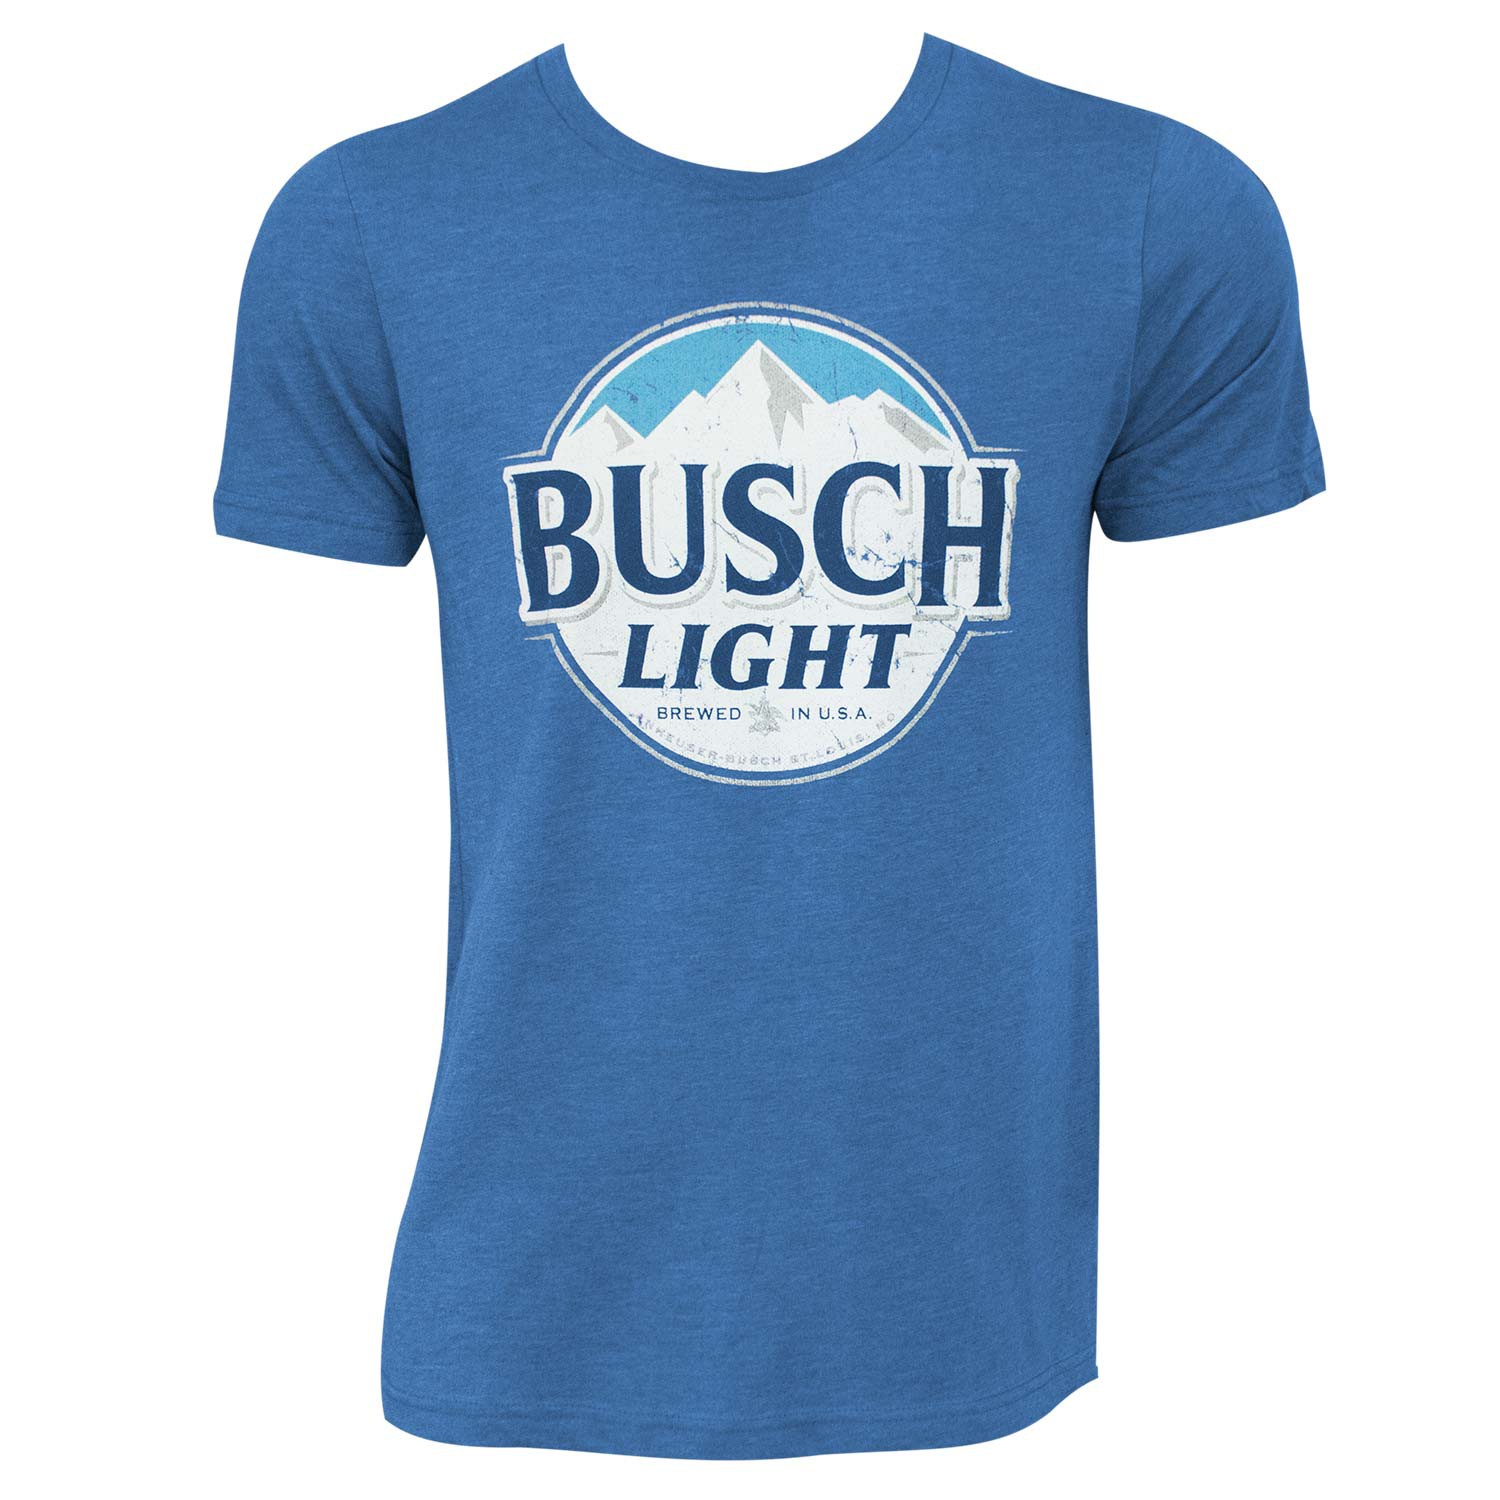 Busch Light Heather Blue Round Logo Tee Shirt